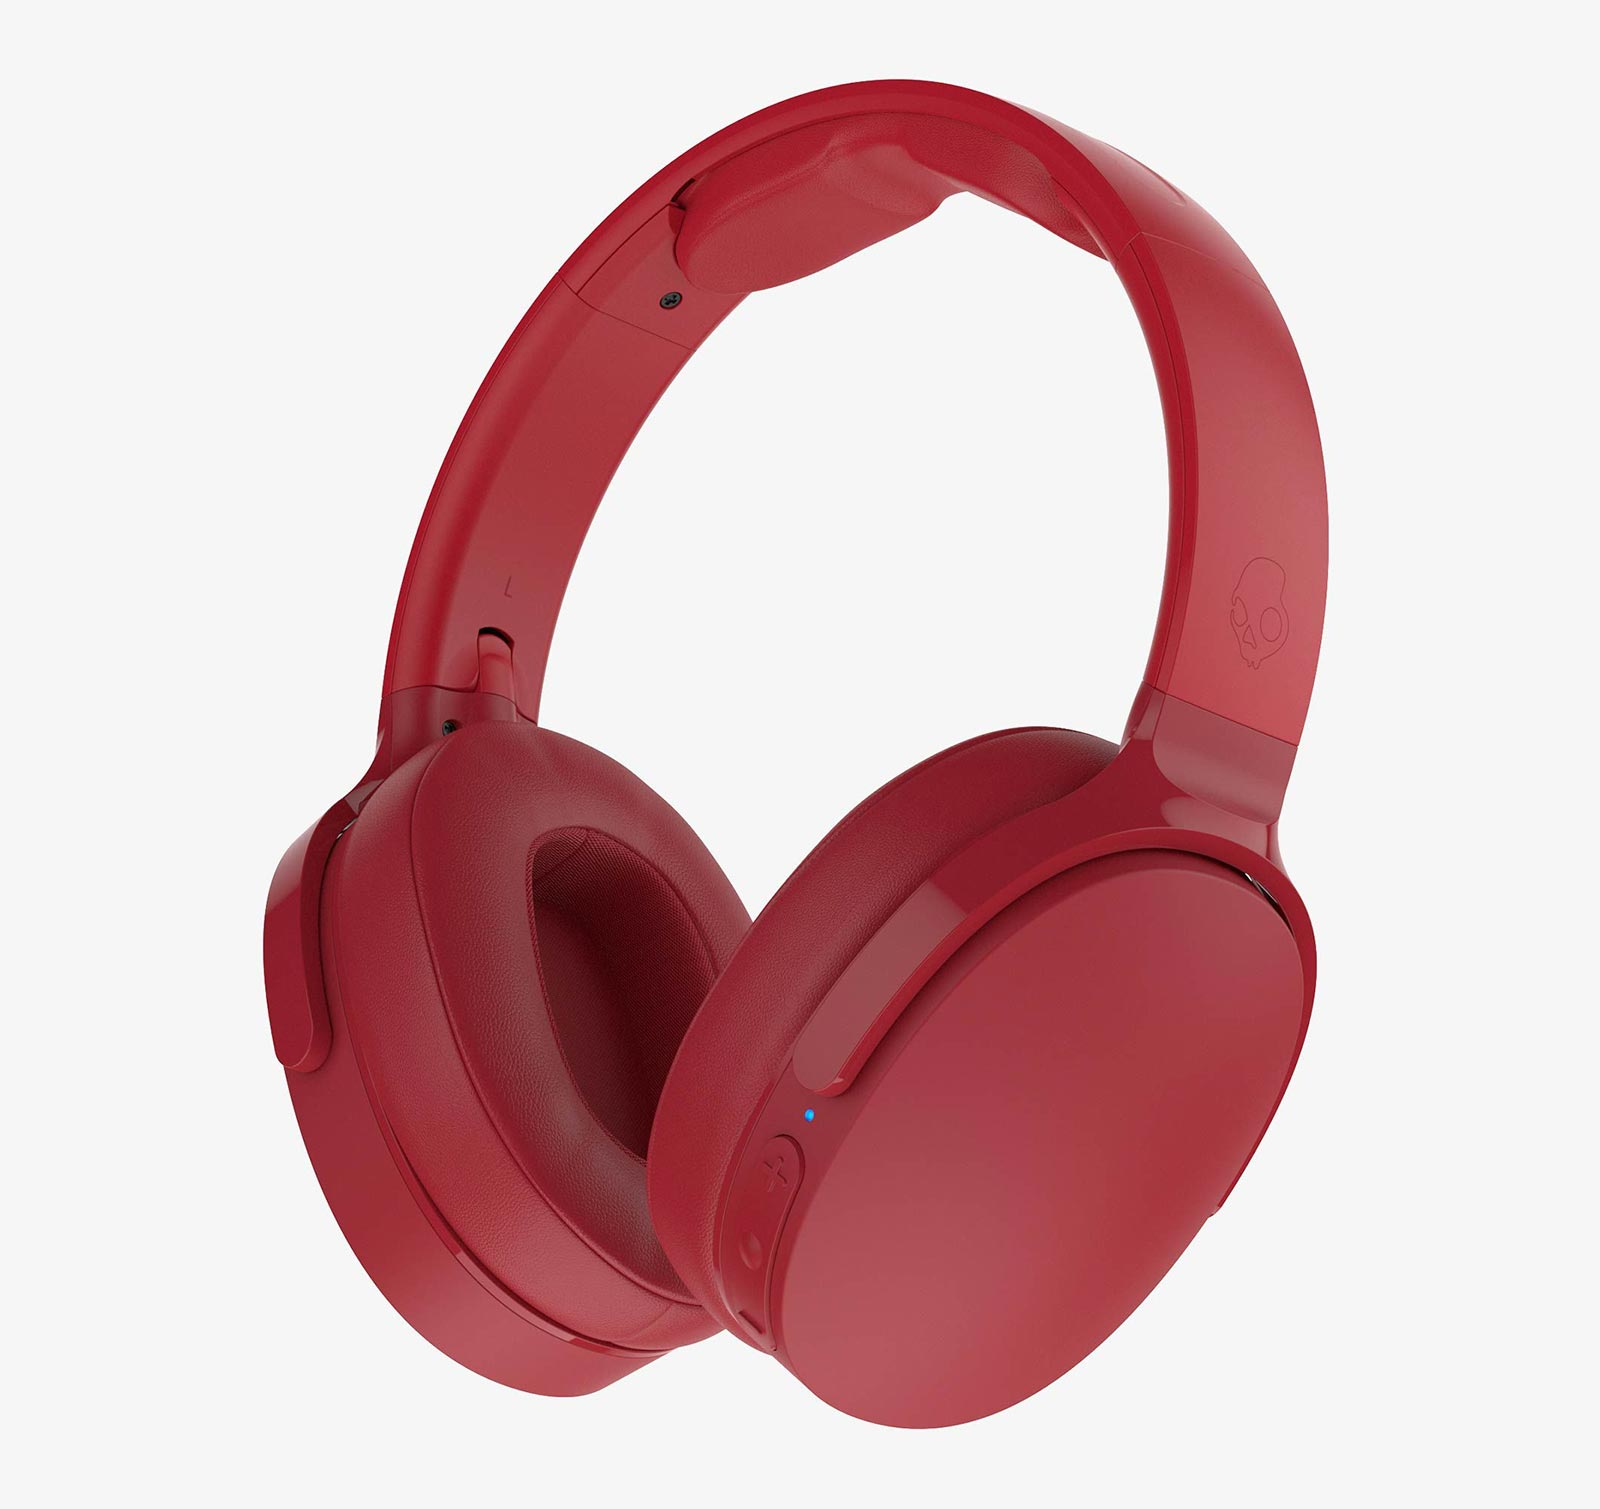 Skullcandy HESH 3 Wireless Red Bluetooth Headphones (S6HTW-K613)